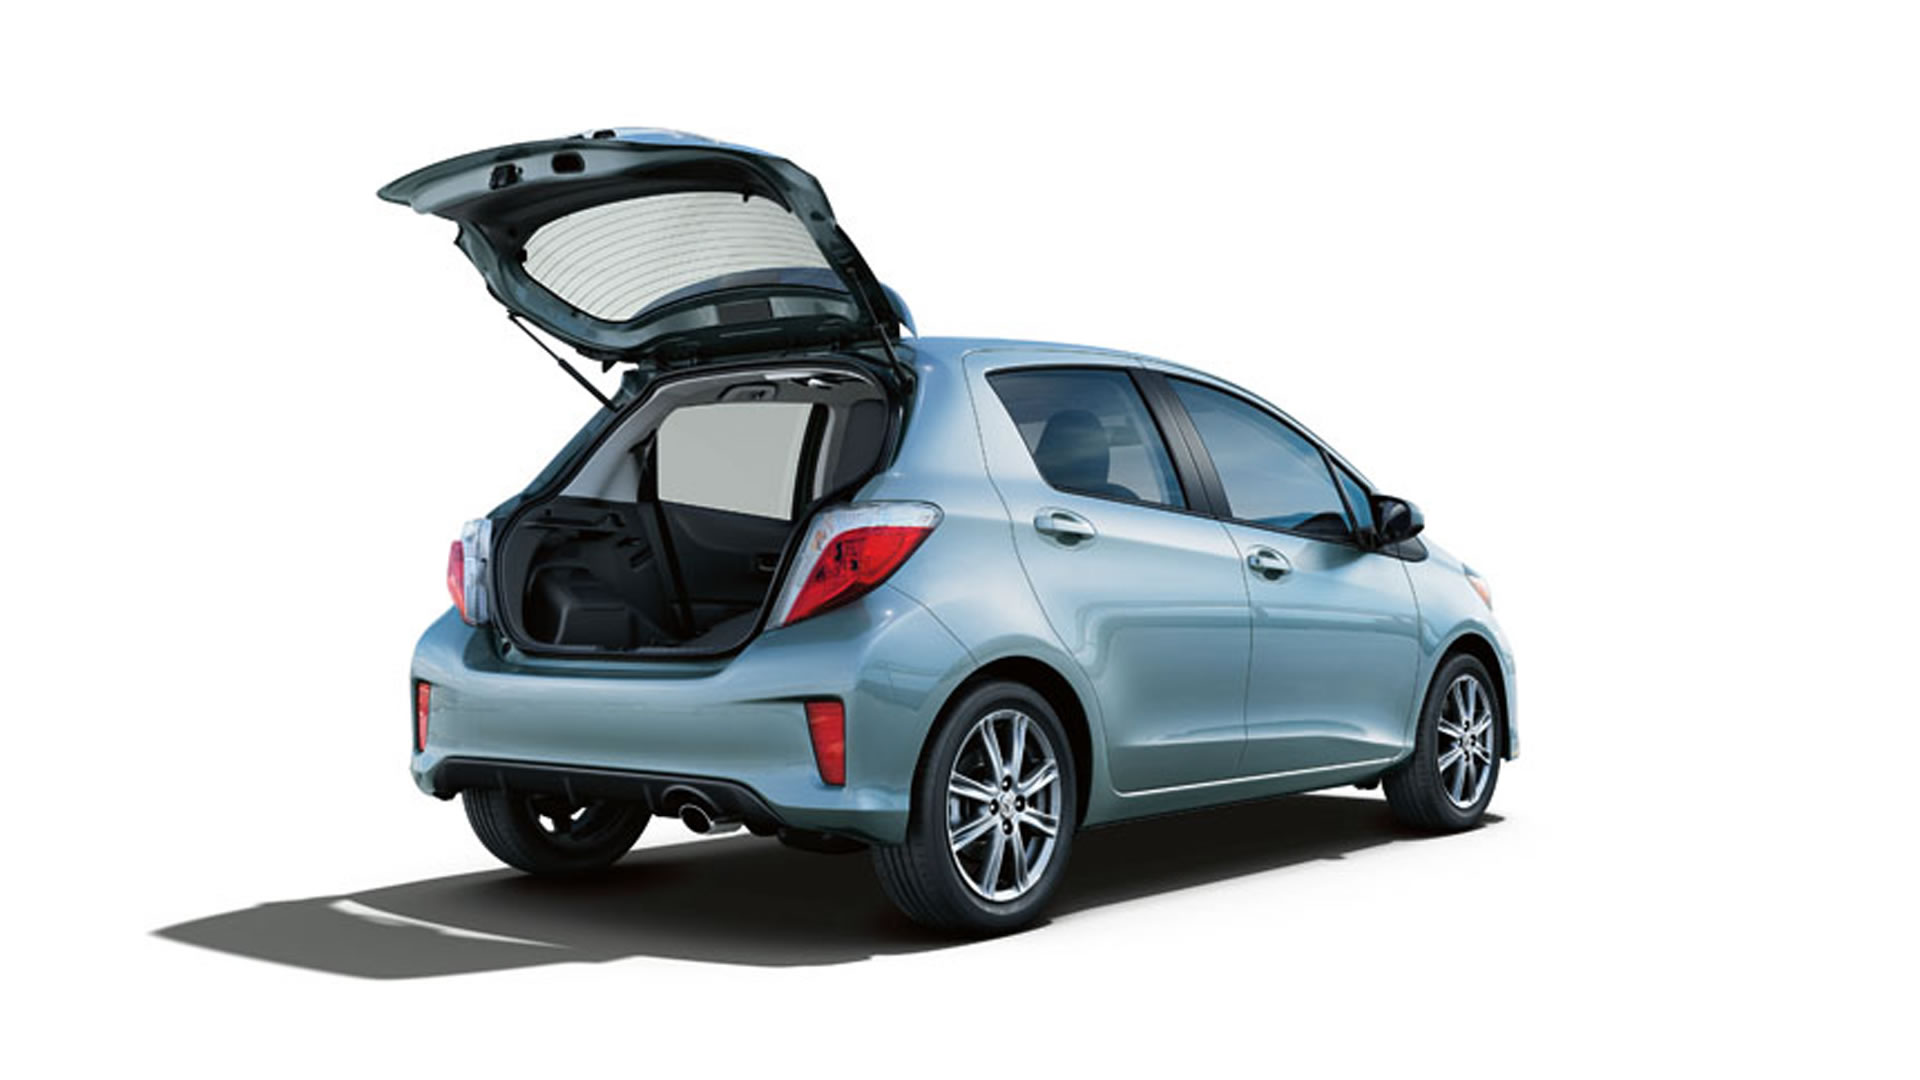 2013 Toyota Yaris 5-door hatchback